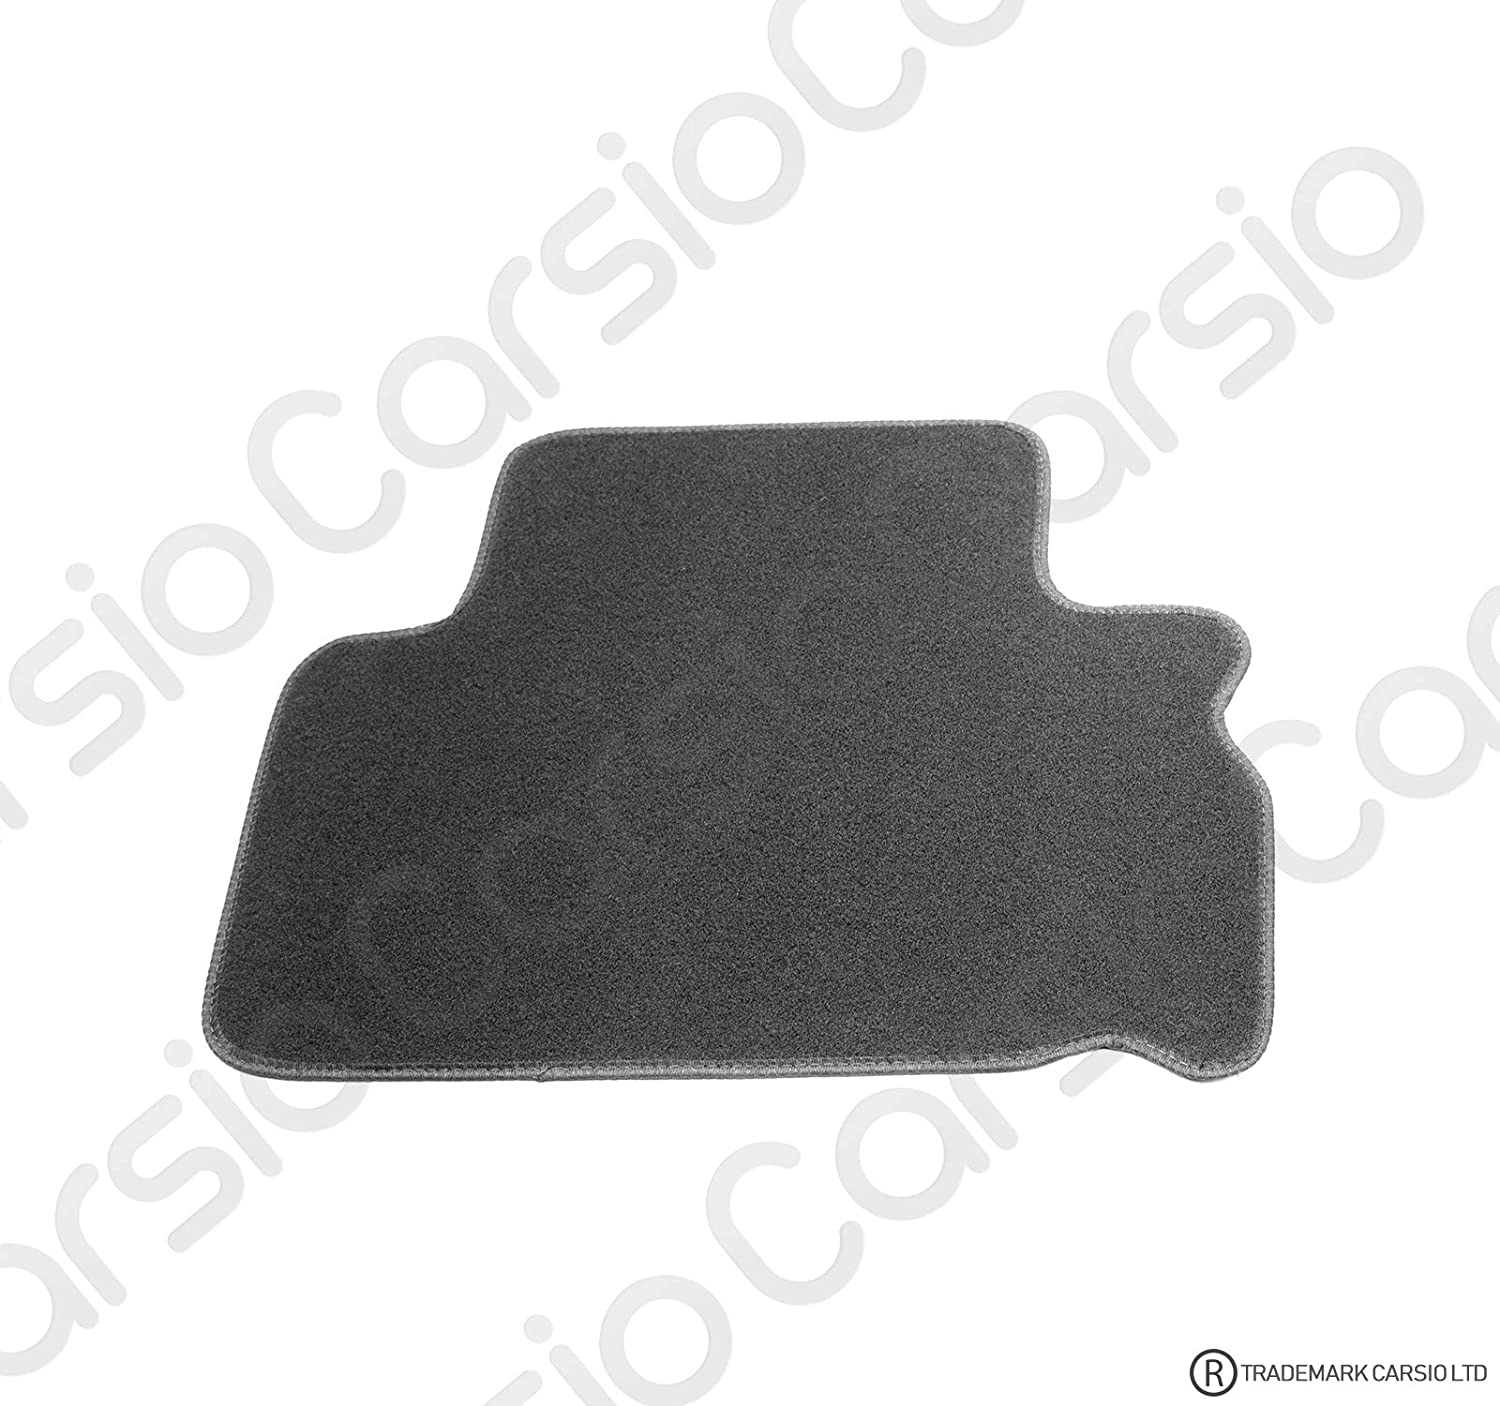 2006-2011 Tailored Fitted Grey Car Mats Ford S Max 7 Seat